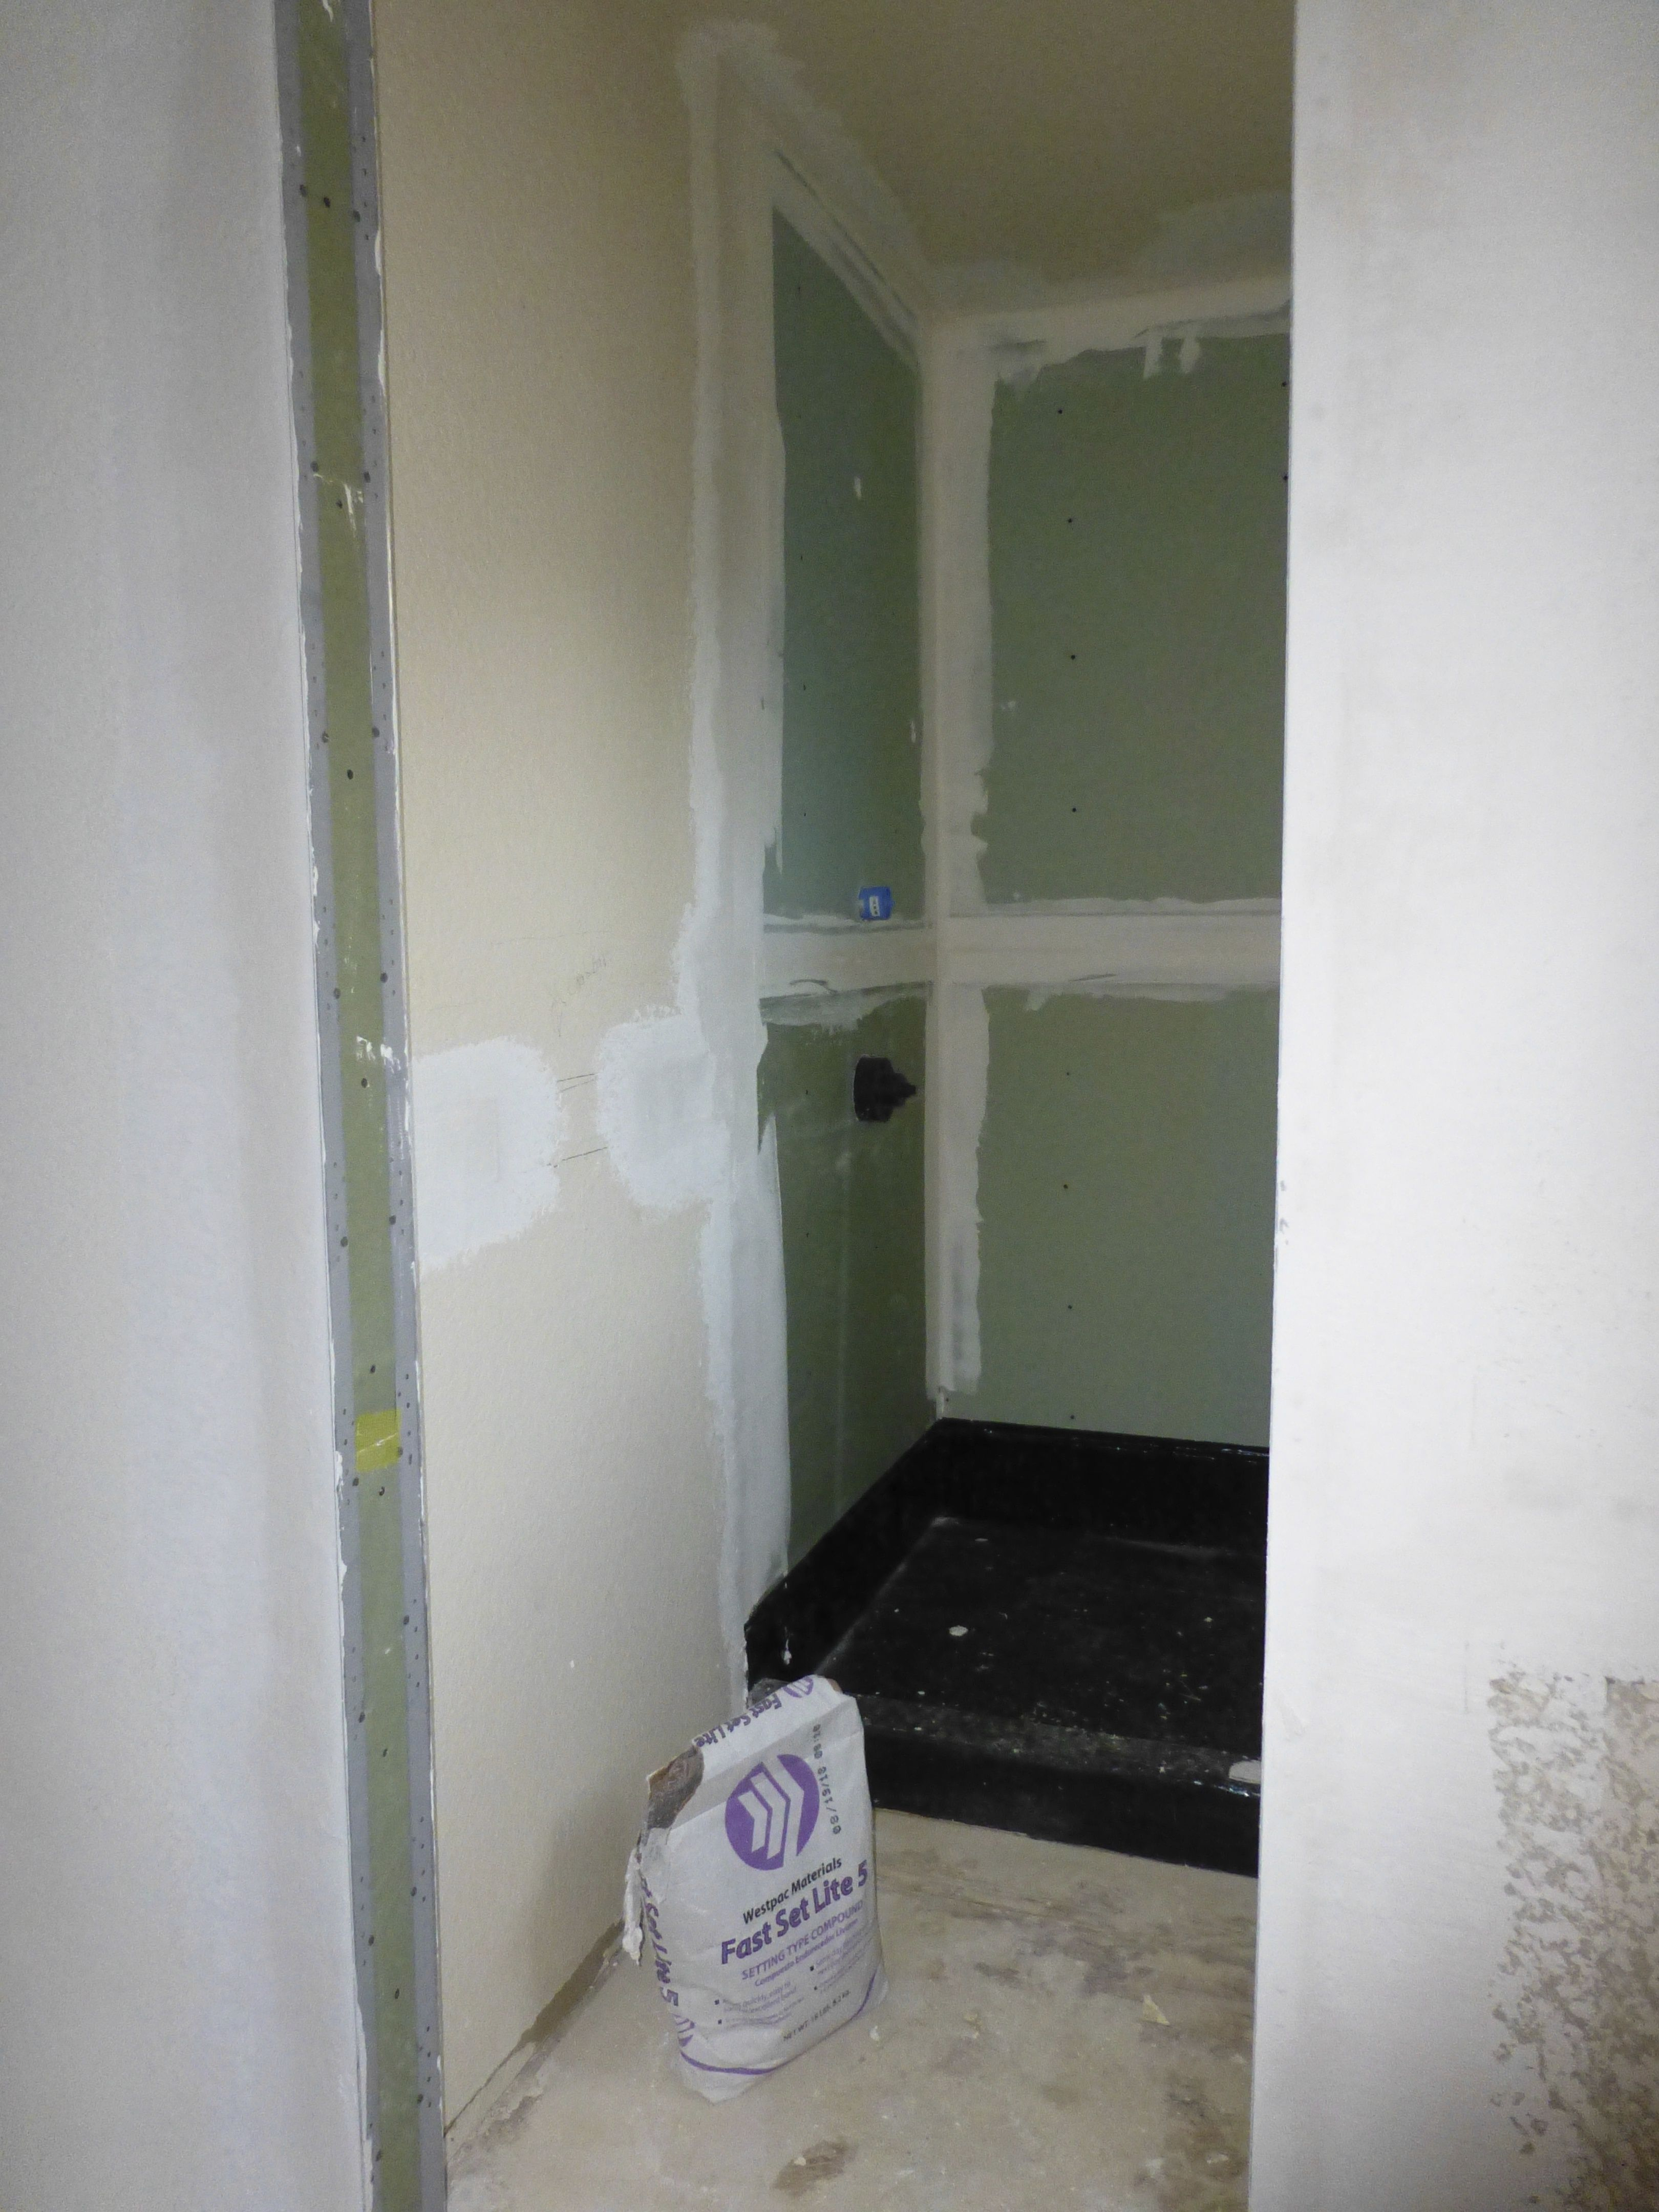 Day 6 Time For Greenboard This Is The Waterproof And Mildew Resistant Type Of Drywall Which Now Comes In The Co Mold Removal Cost Bathrooms Remodel Remodel